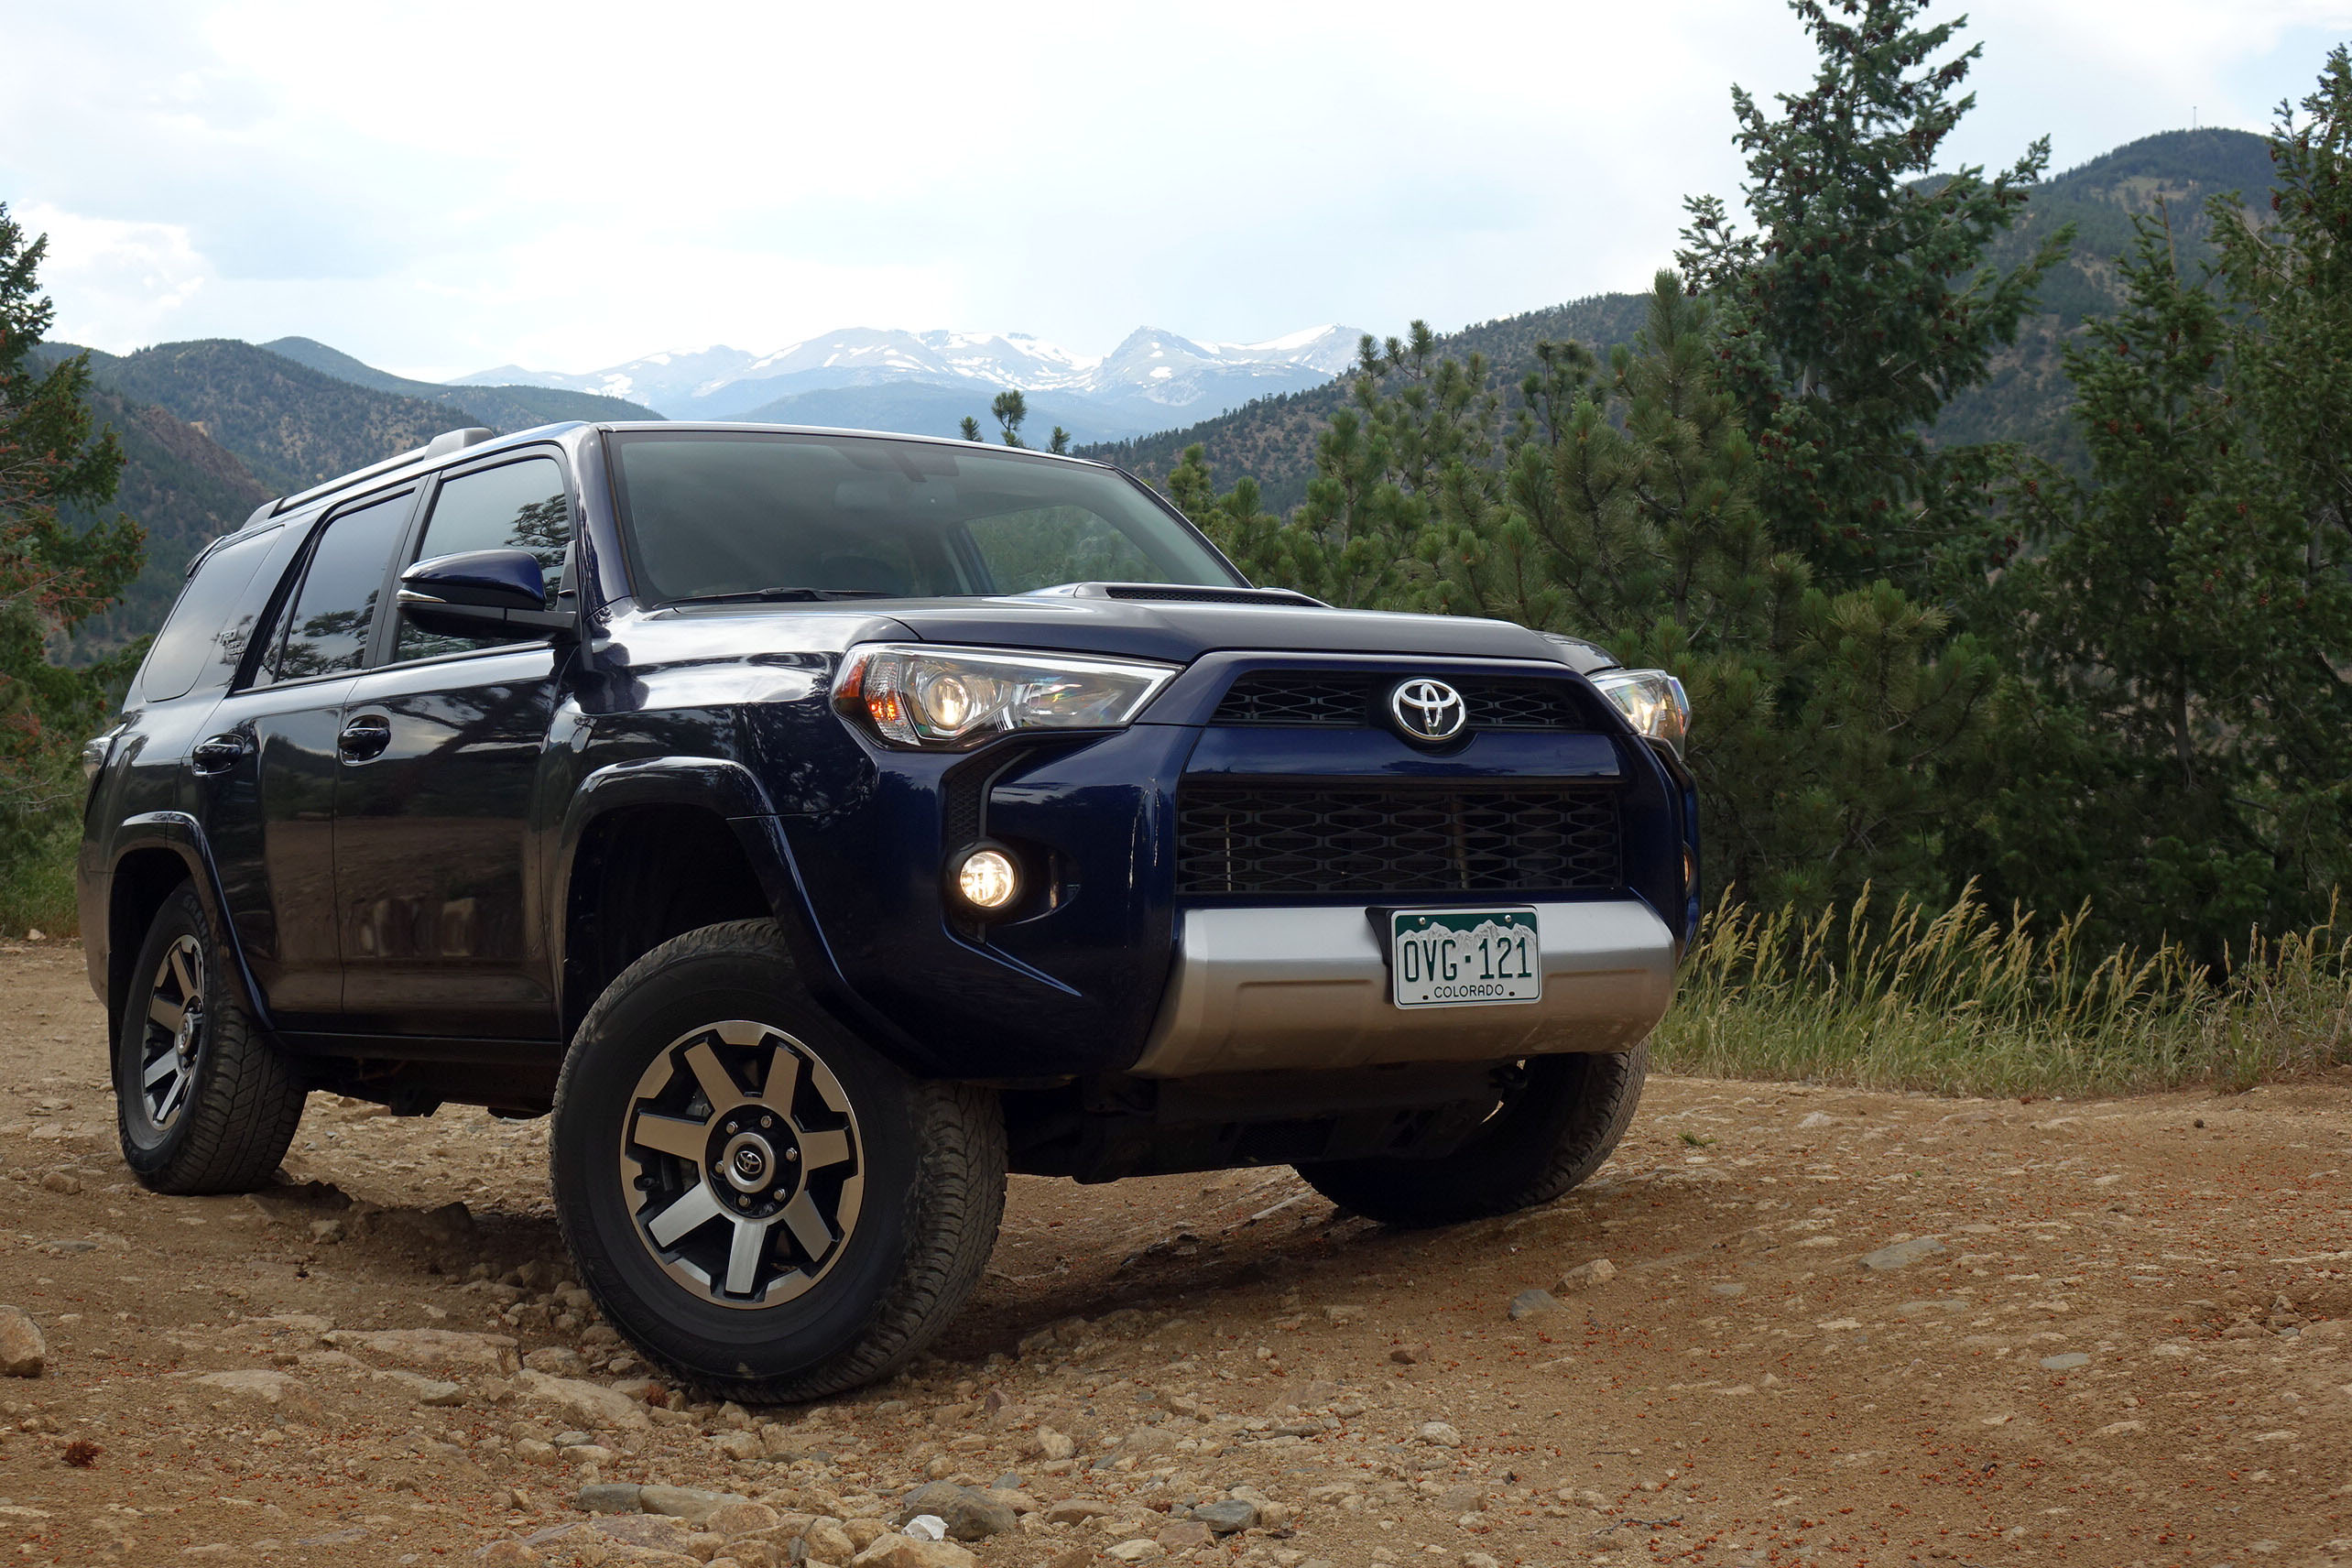 2017 toyota 4runner trd off road trail review archaic in all the right ways. Black Bedroom Furniture Sets. Home Design Ideas